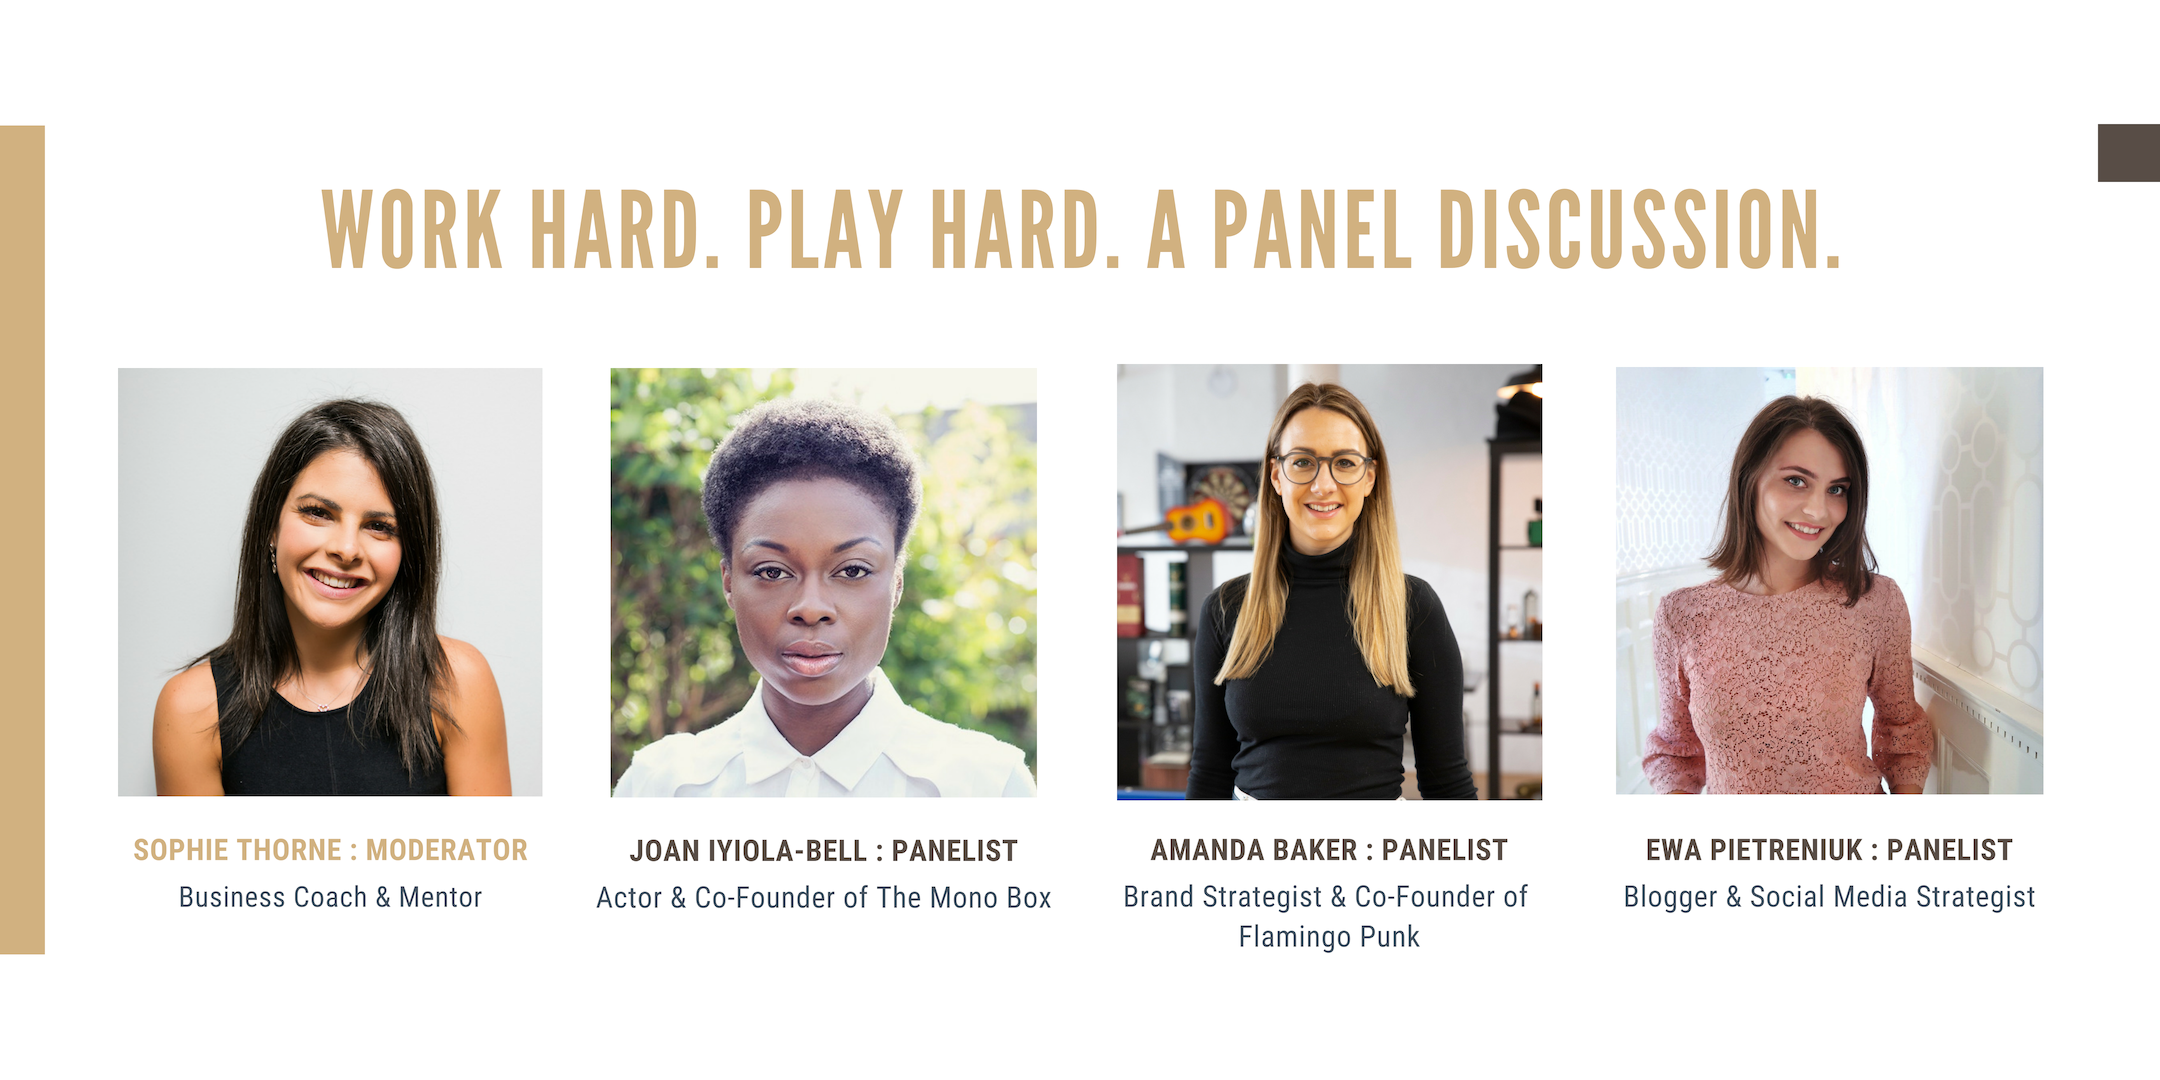 Work Hard. Play Hard. A Panel Discussion. - Thought-provoking discussion on the challenges and rewards of finding a work-life balance with the demands of an ambitious career.Thursday 28th March, 7.30pm, The Curtain